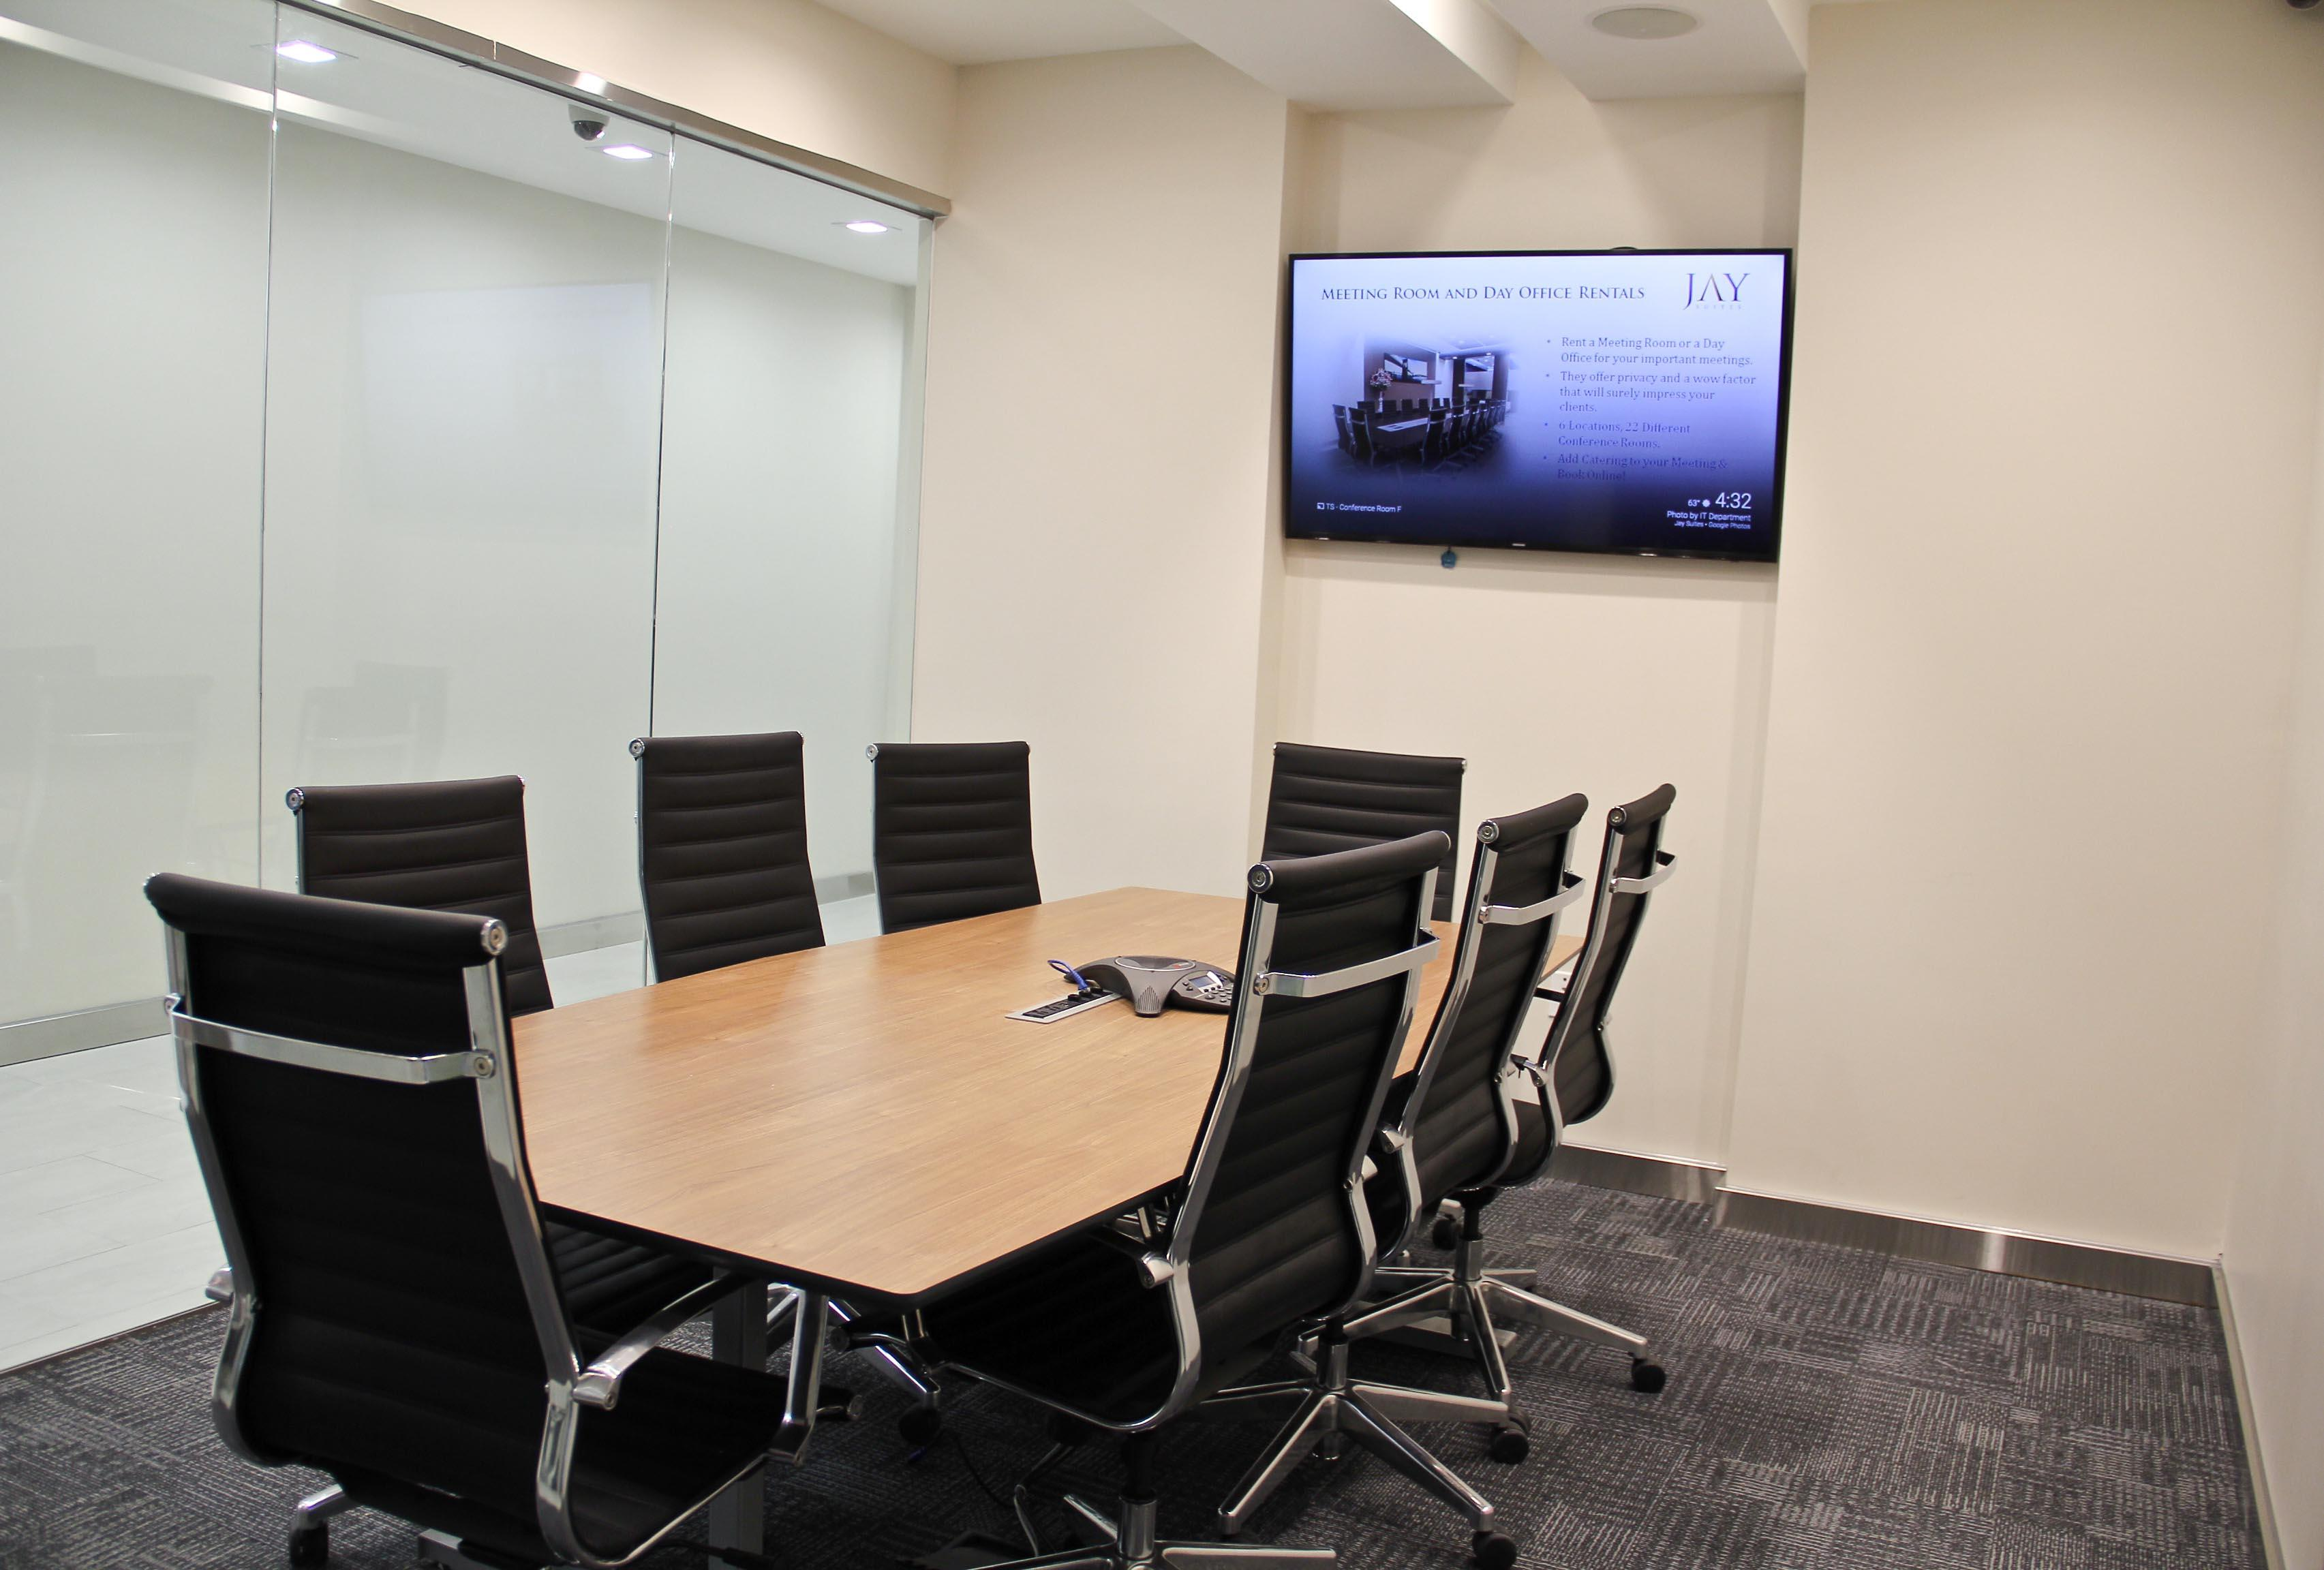 Jay Suites 34th Street - Meeting Room F for  14-now 25% off!!!